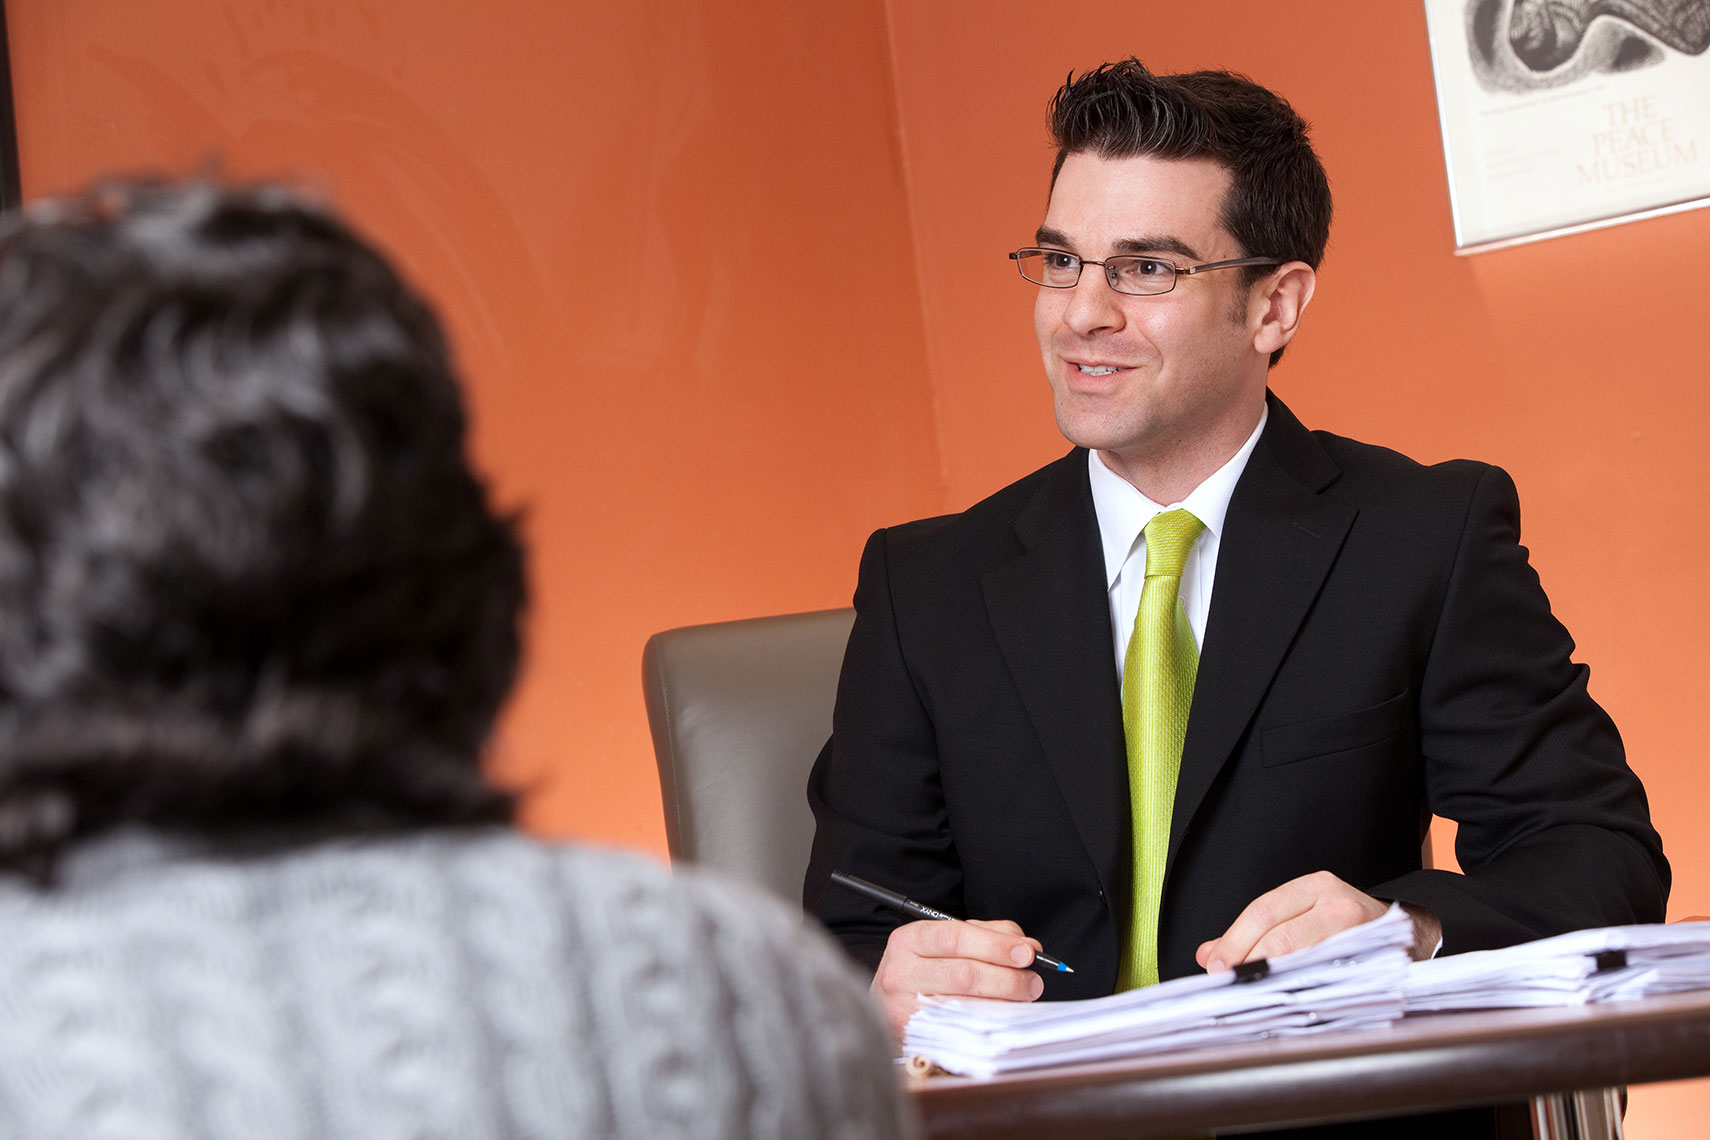 Attorney-Peter-Mello-Speaks-with-Client-in-Office-Meeting